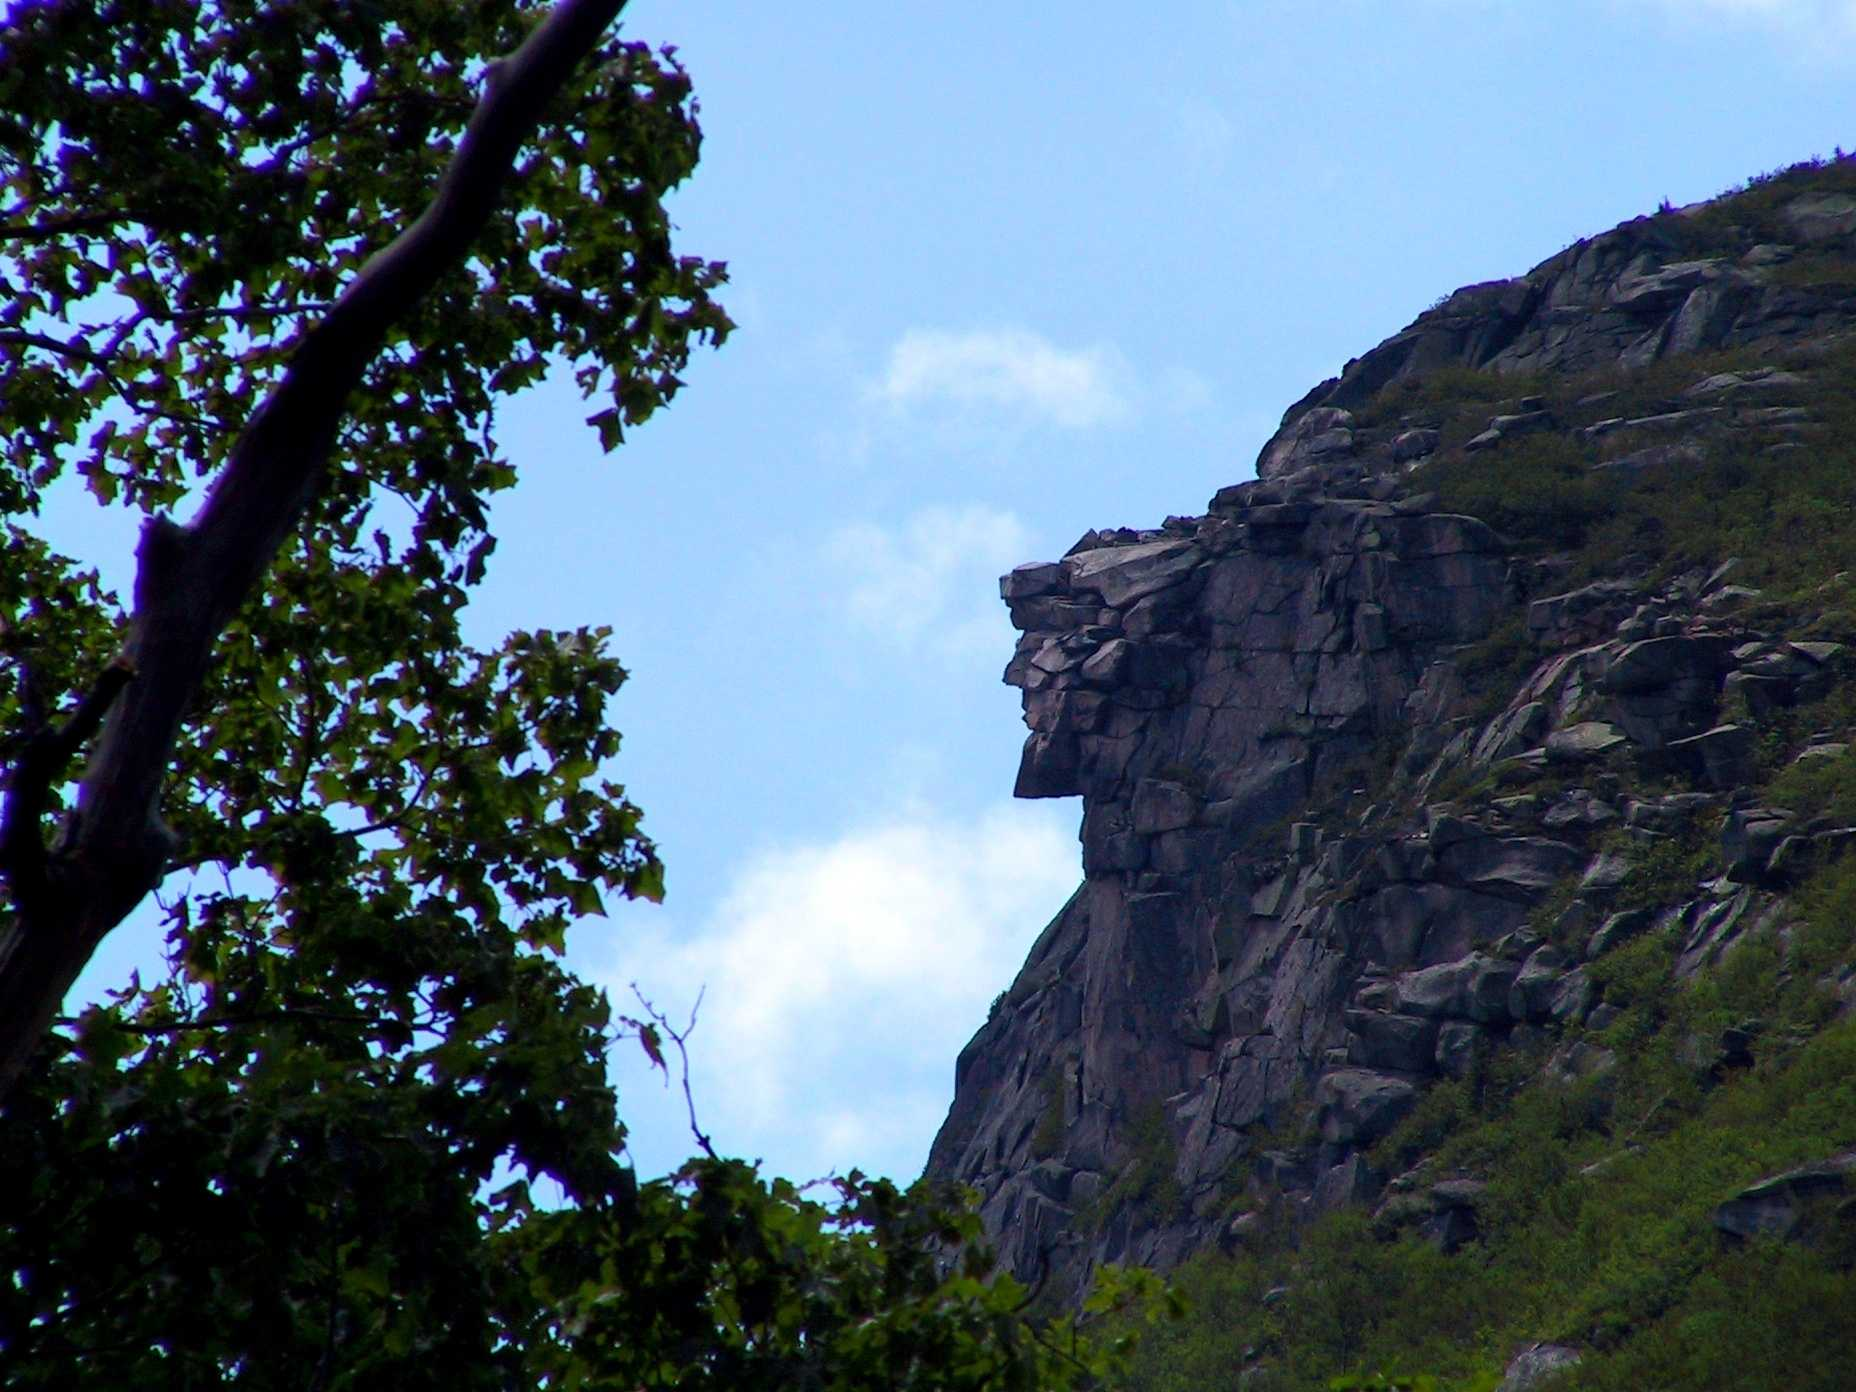 Things You May Not Know About The Old Man Of The Mountain